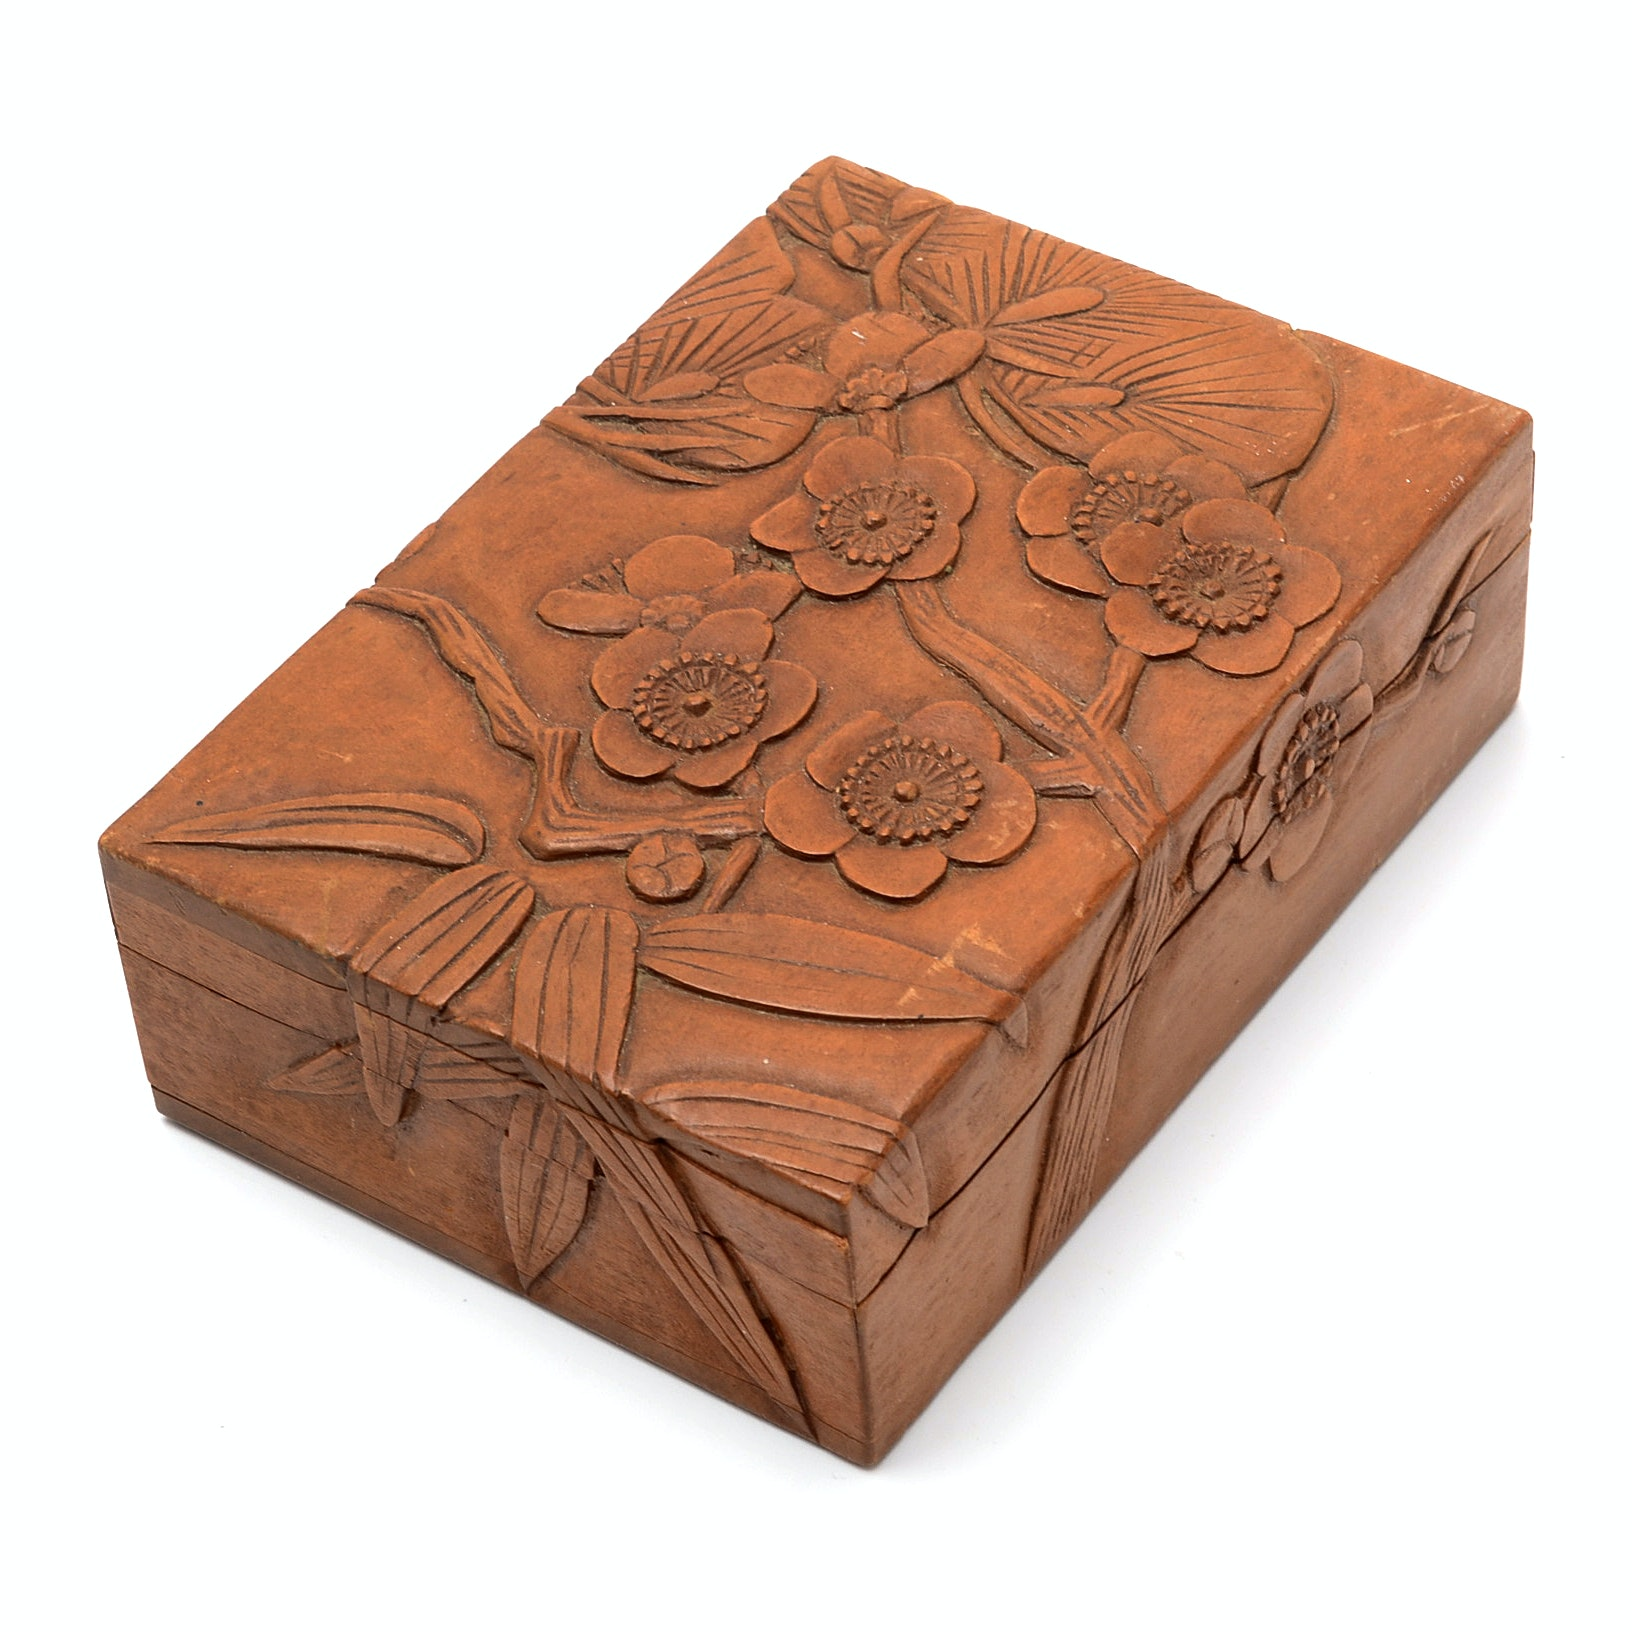 Shōwa Period Carved Wood Box with Cherry Blossoms